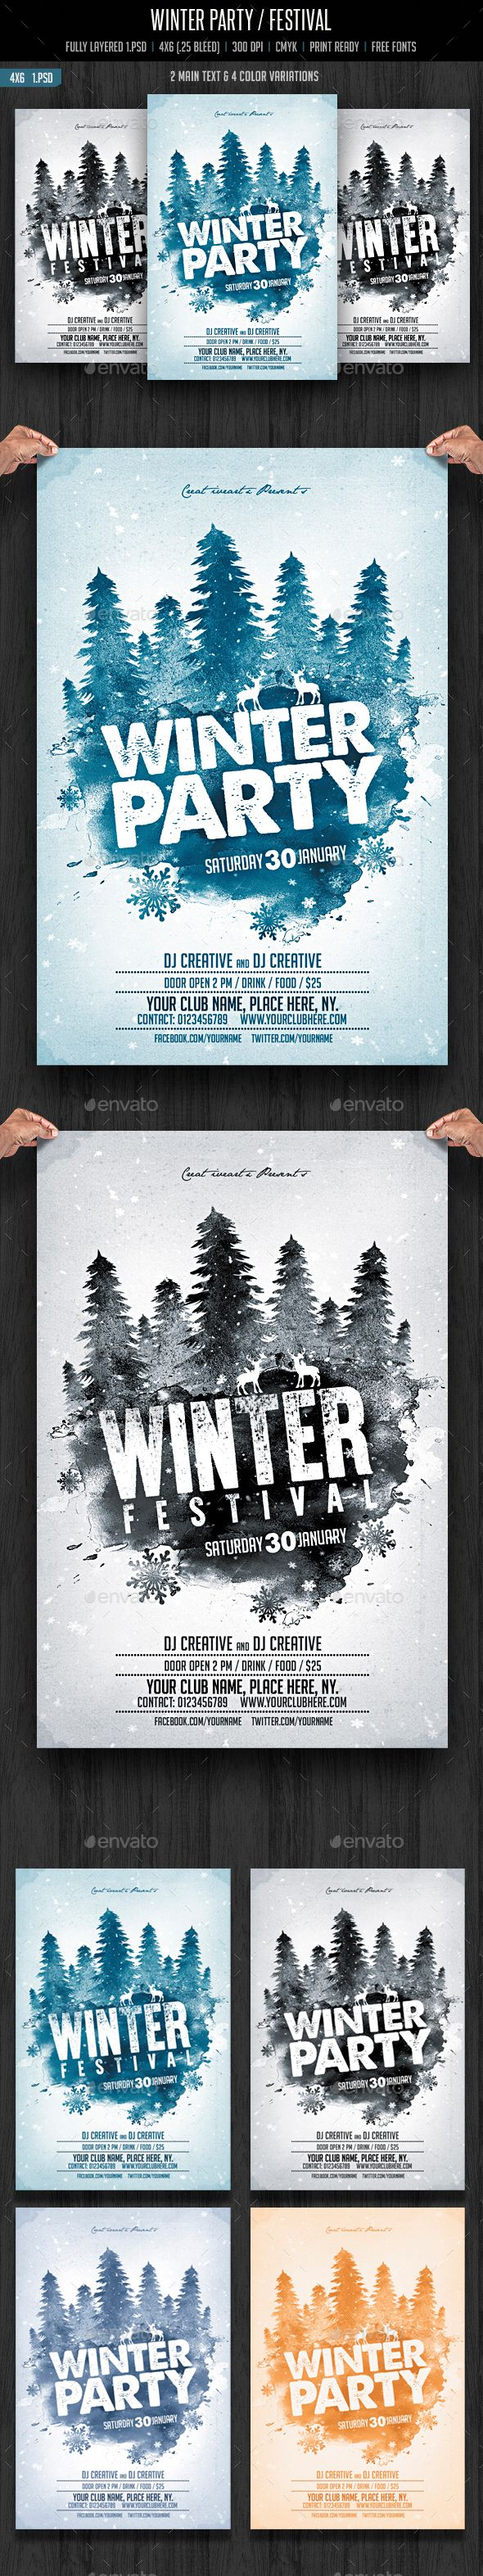 Winter Party / Festival Flyer Template PSD #design Download: http://graphicriver.net/item/winter-party-festival/13700115?ref=ksioks